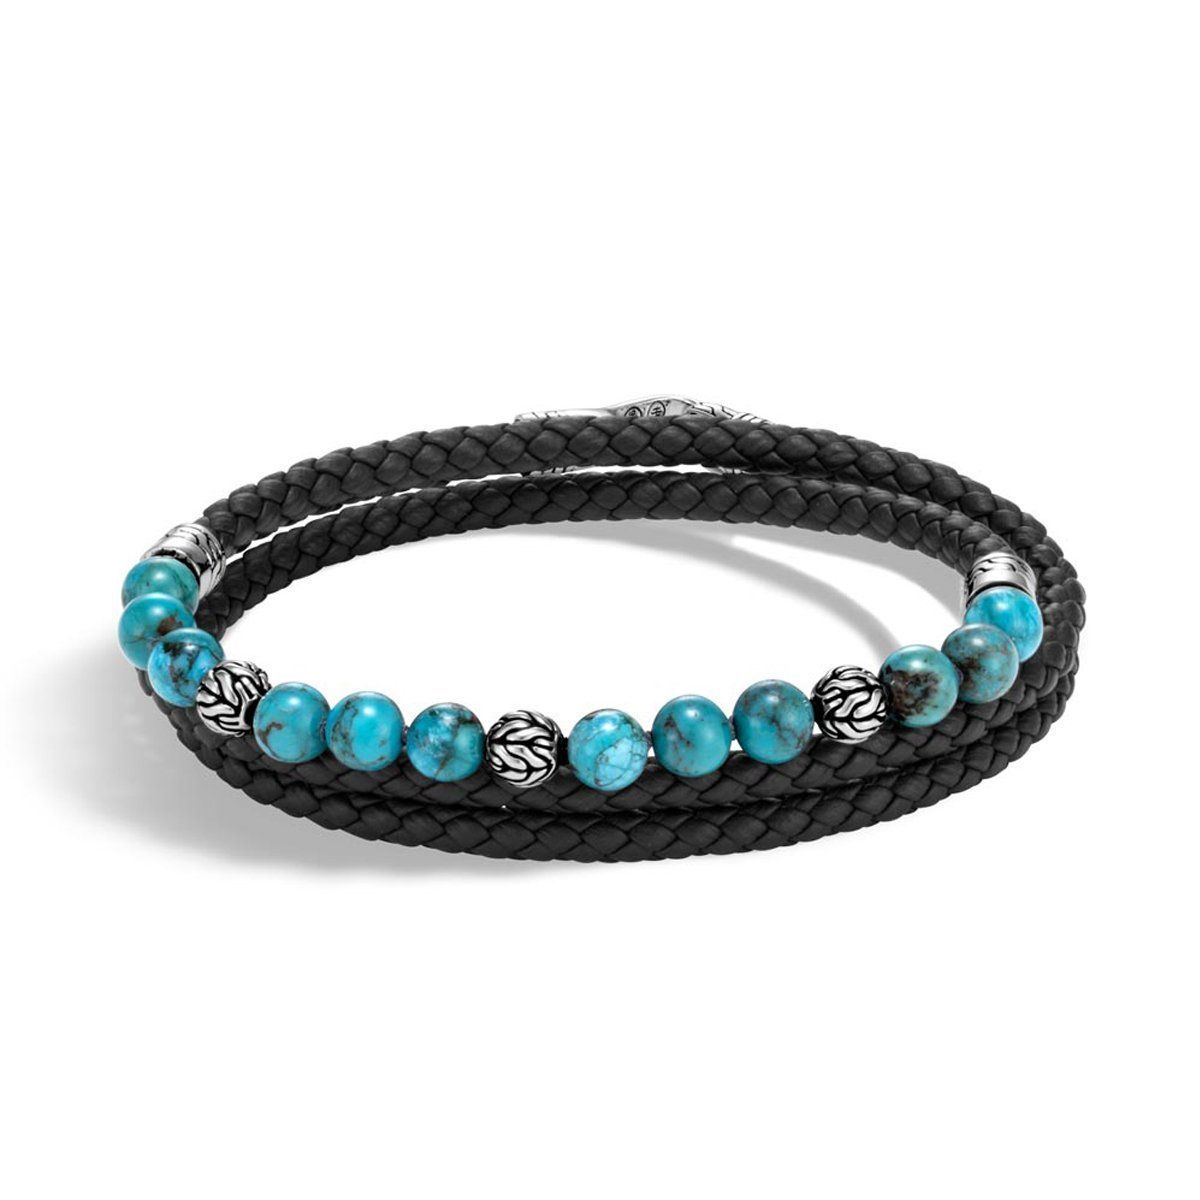 John Hardy Mens Classic Chain Sterling Silver & Turquoise Bead Bracelet ZPjWqg7Qy